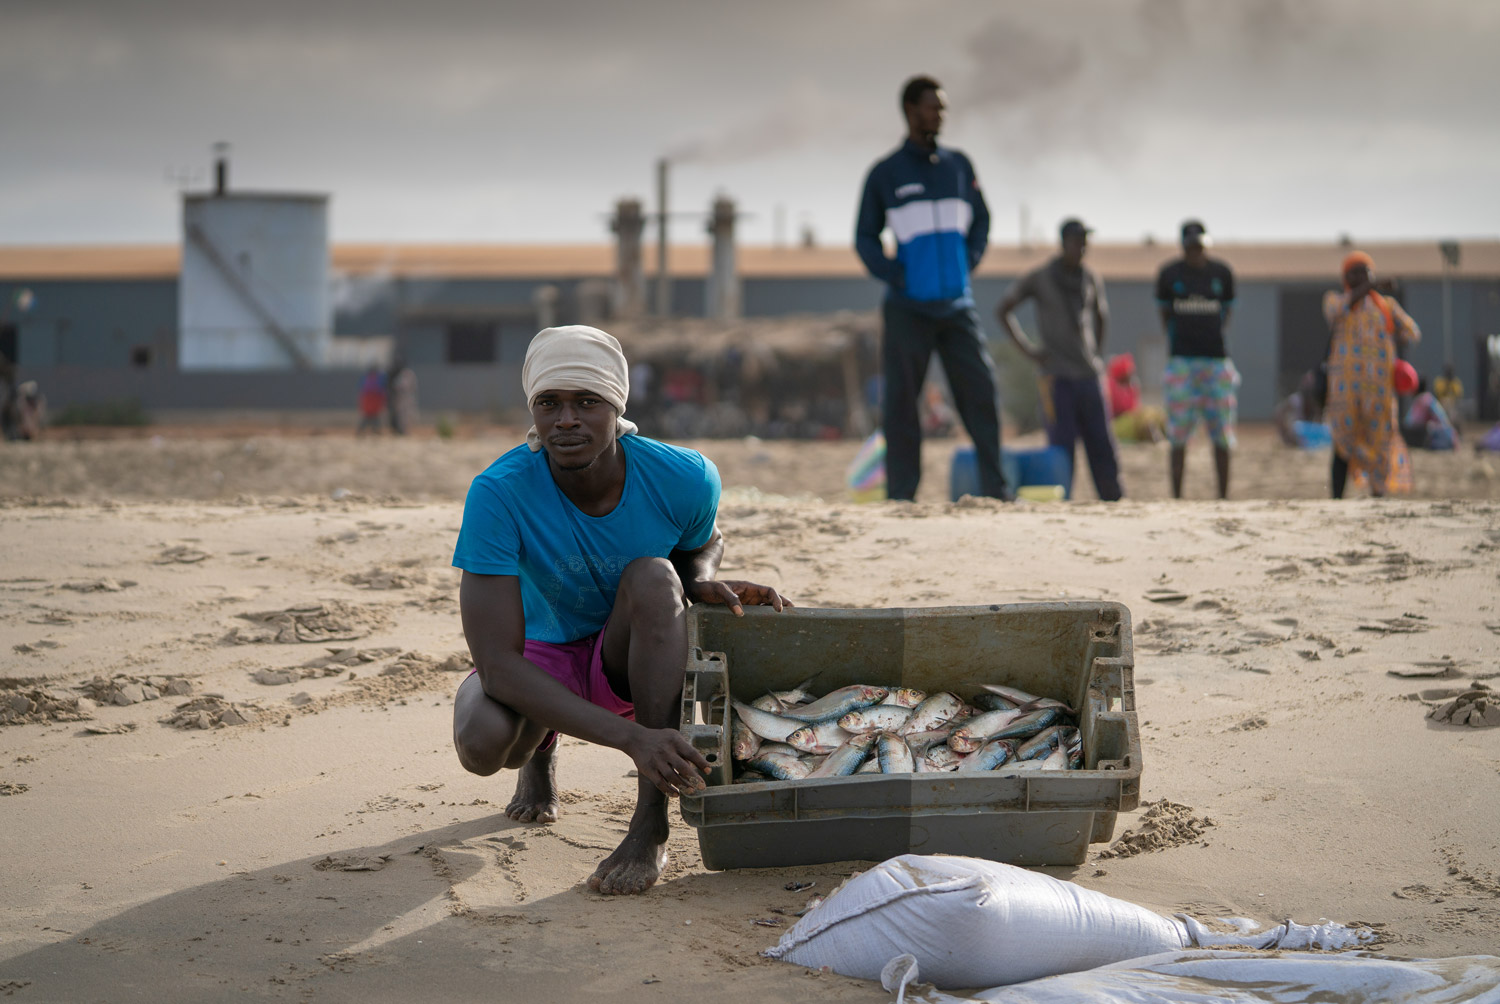 Fisherman showing his catch in The Gambia